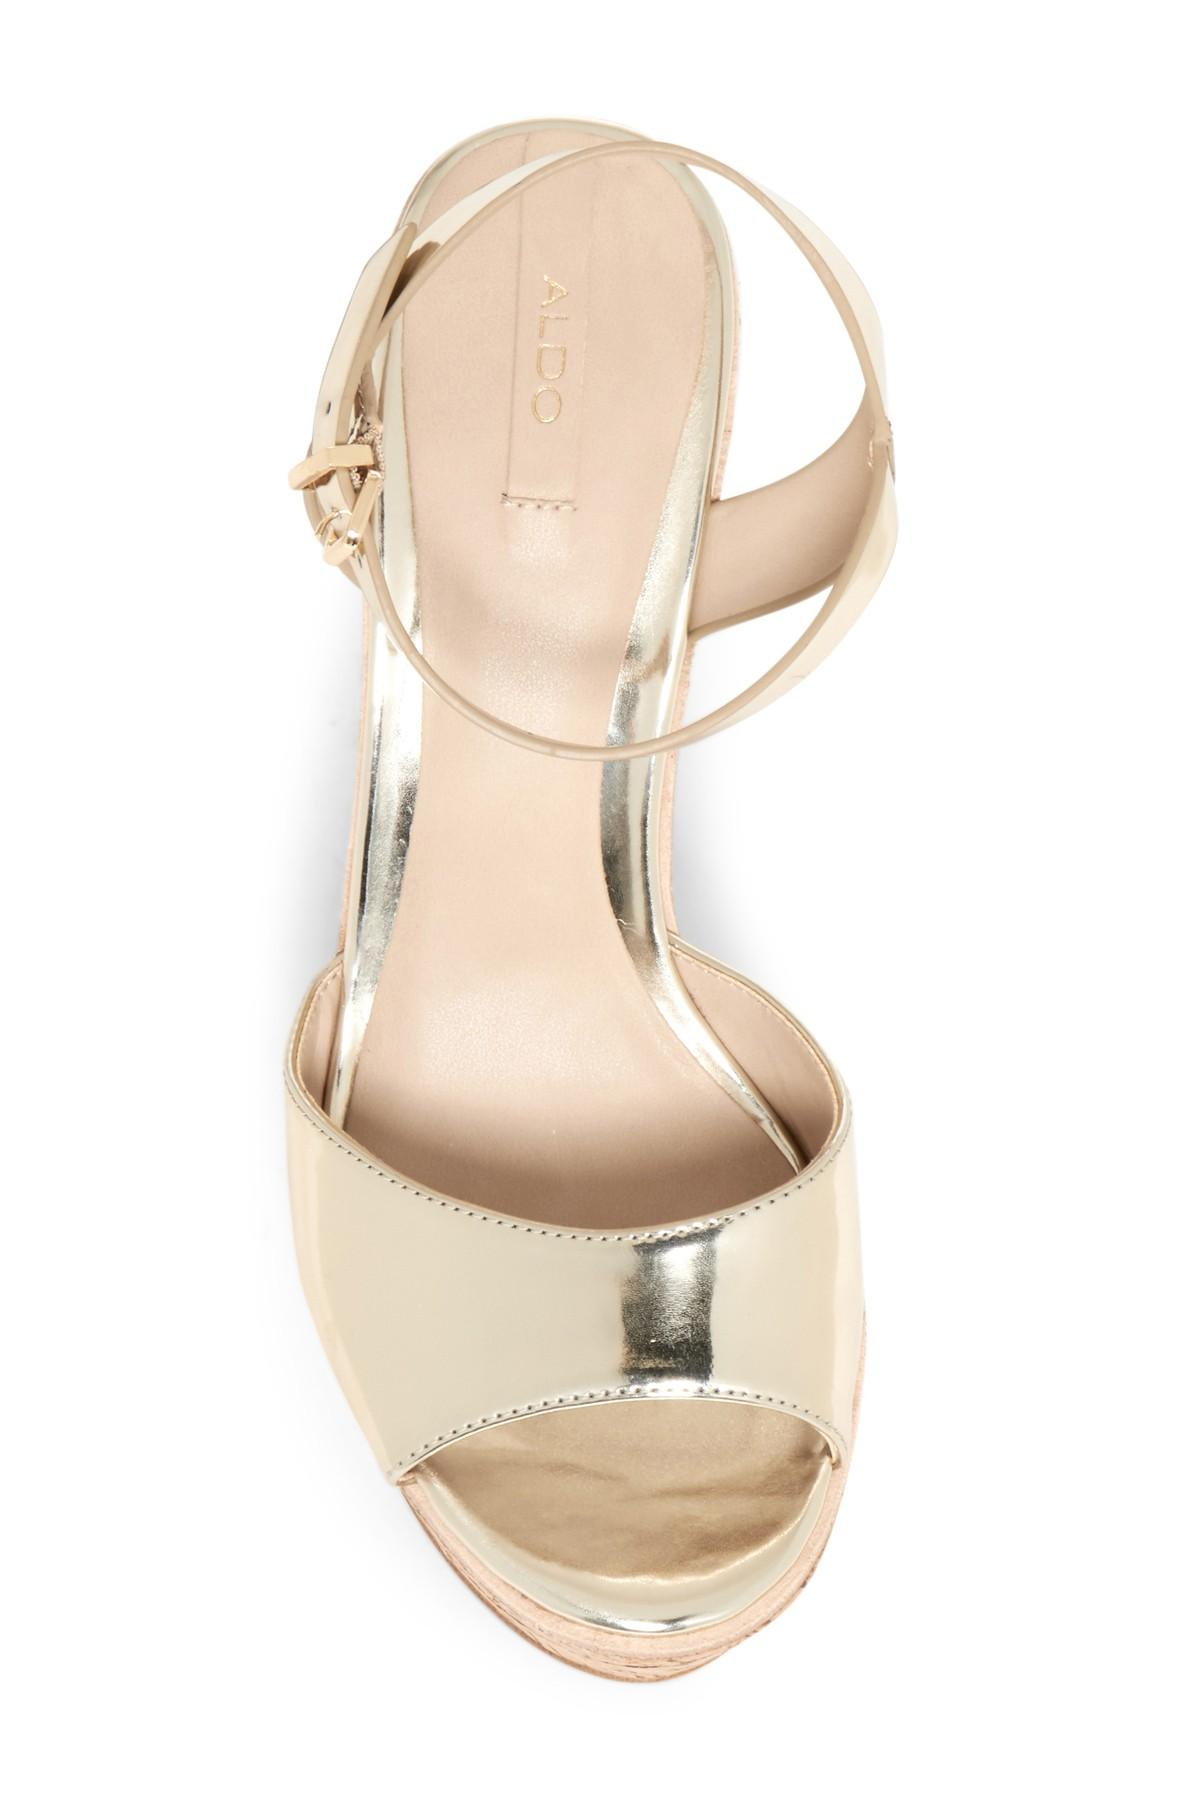 3e84c04a16e Lyst - ALDO Aralinna Wedge Sandal in Metallic